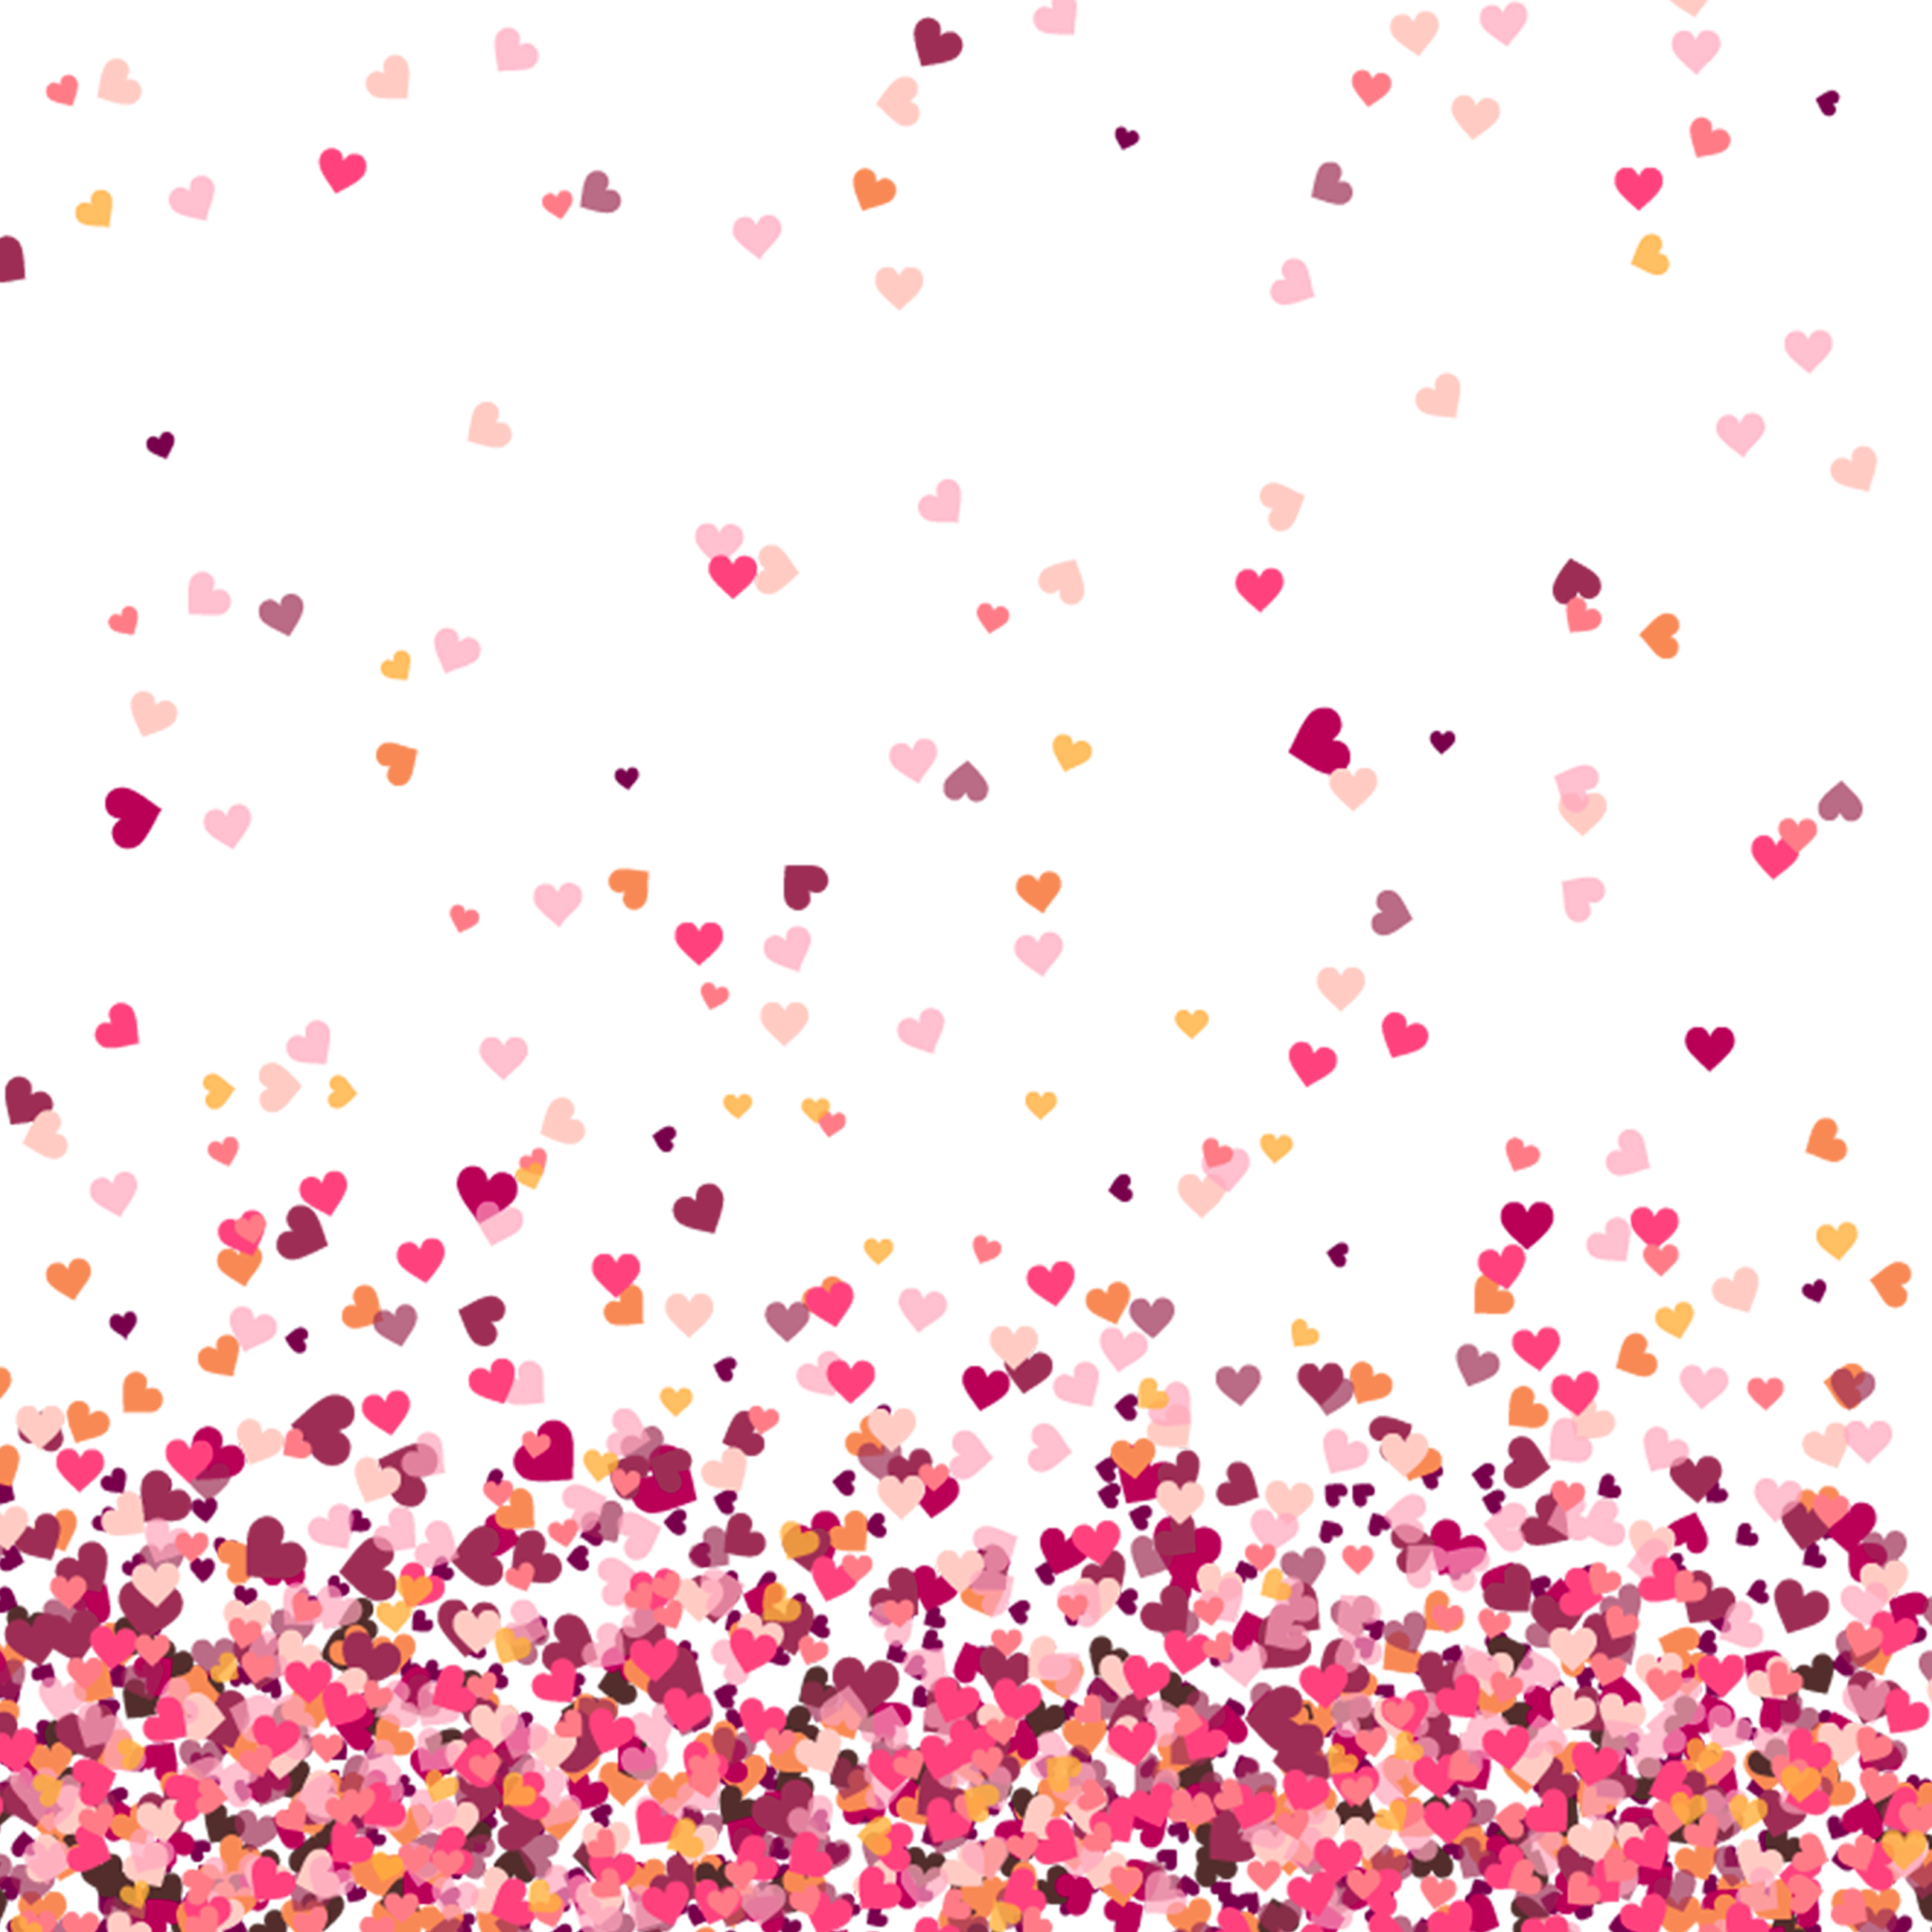 Heart background png. Colorful hd download